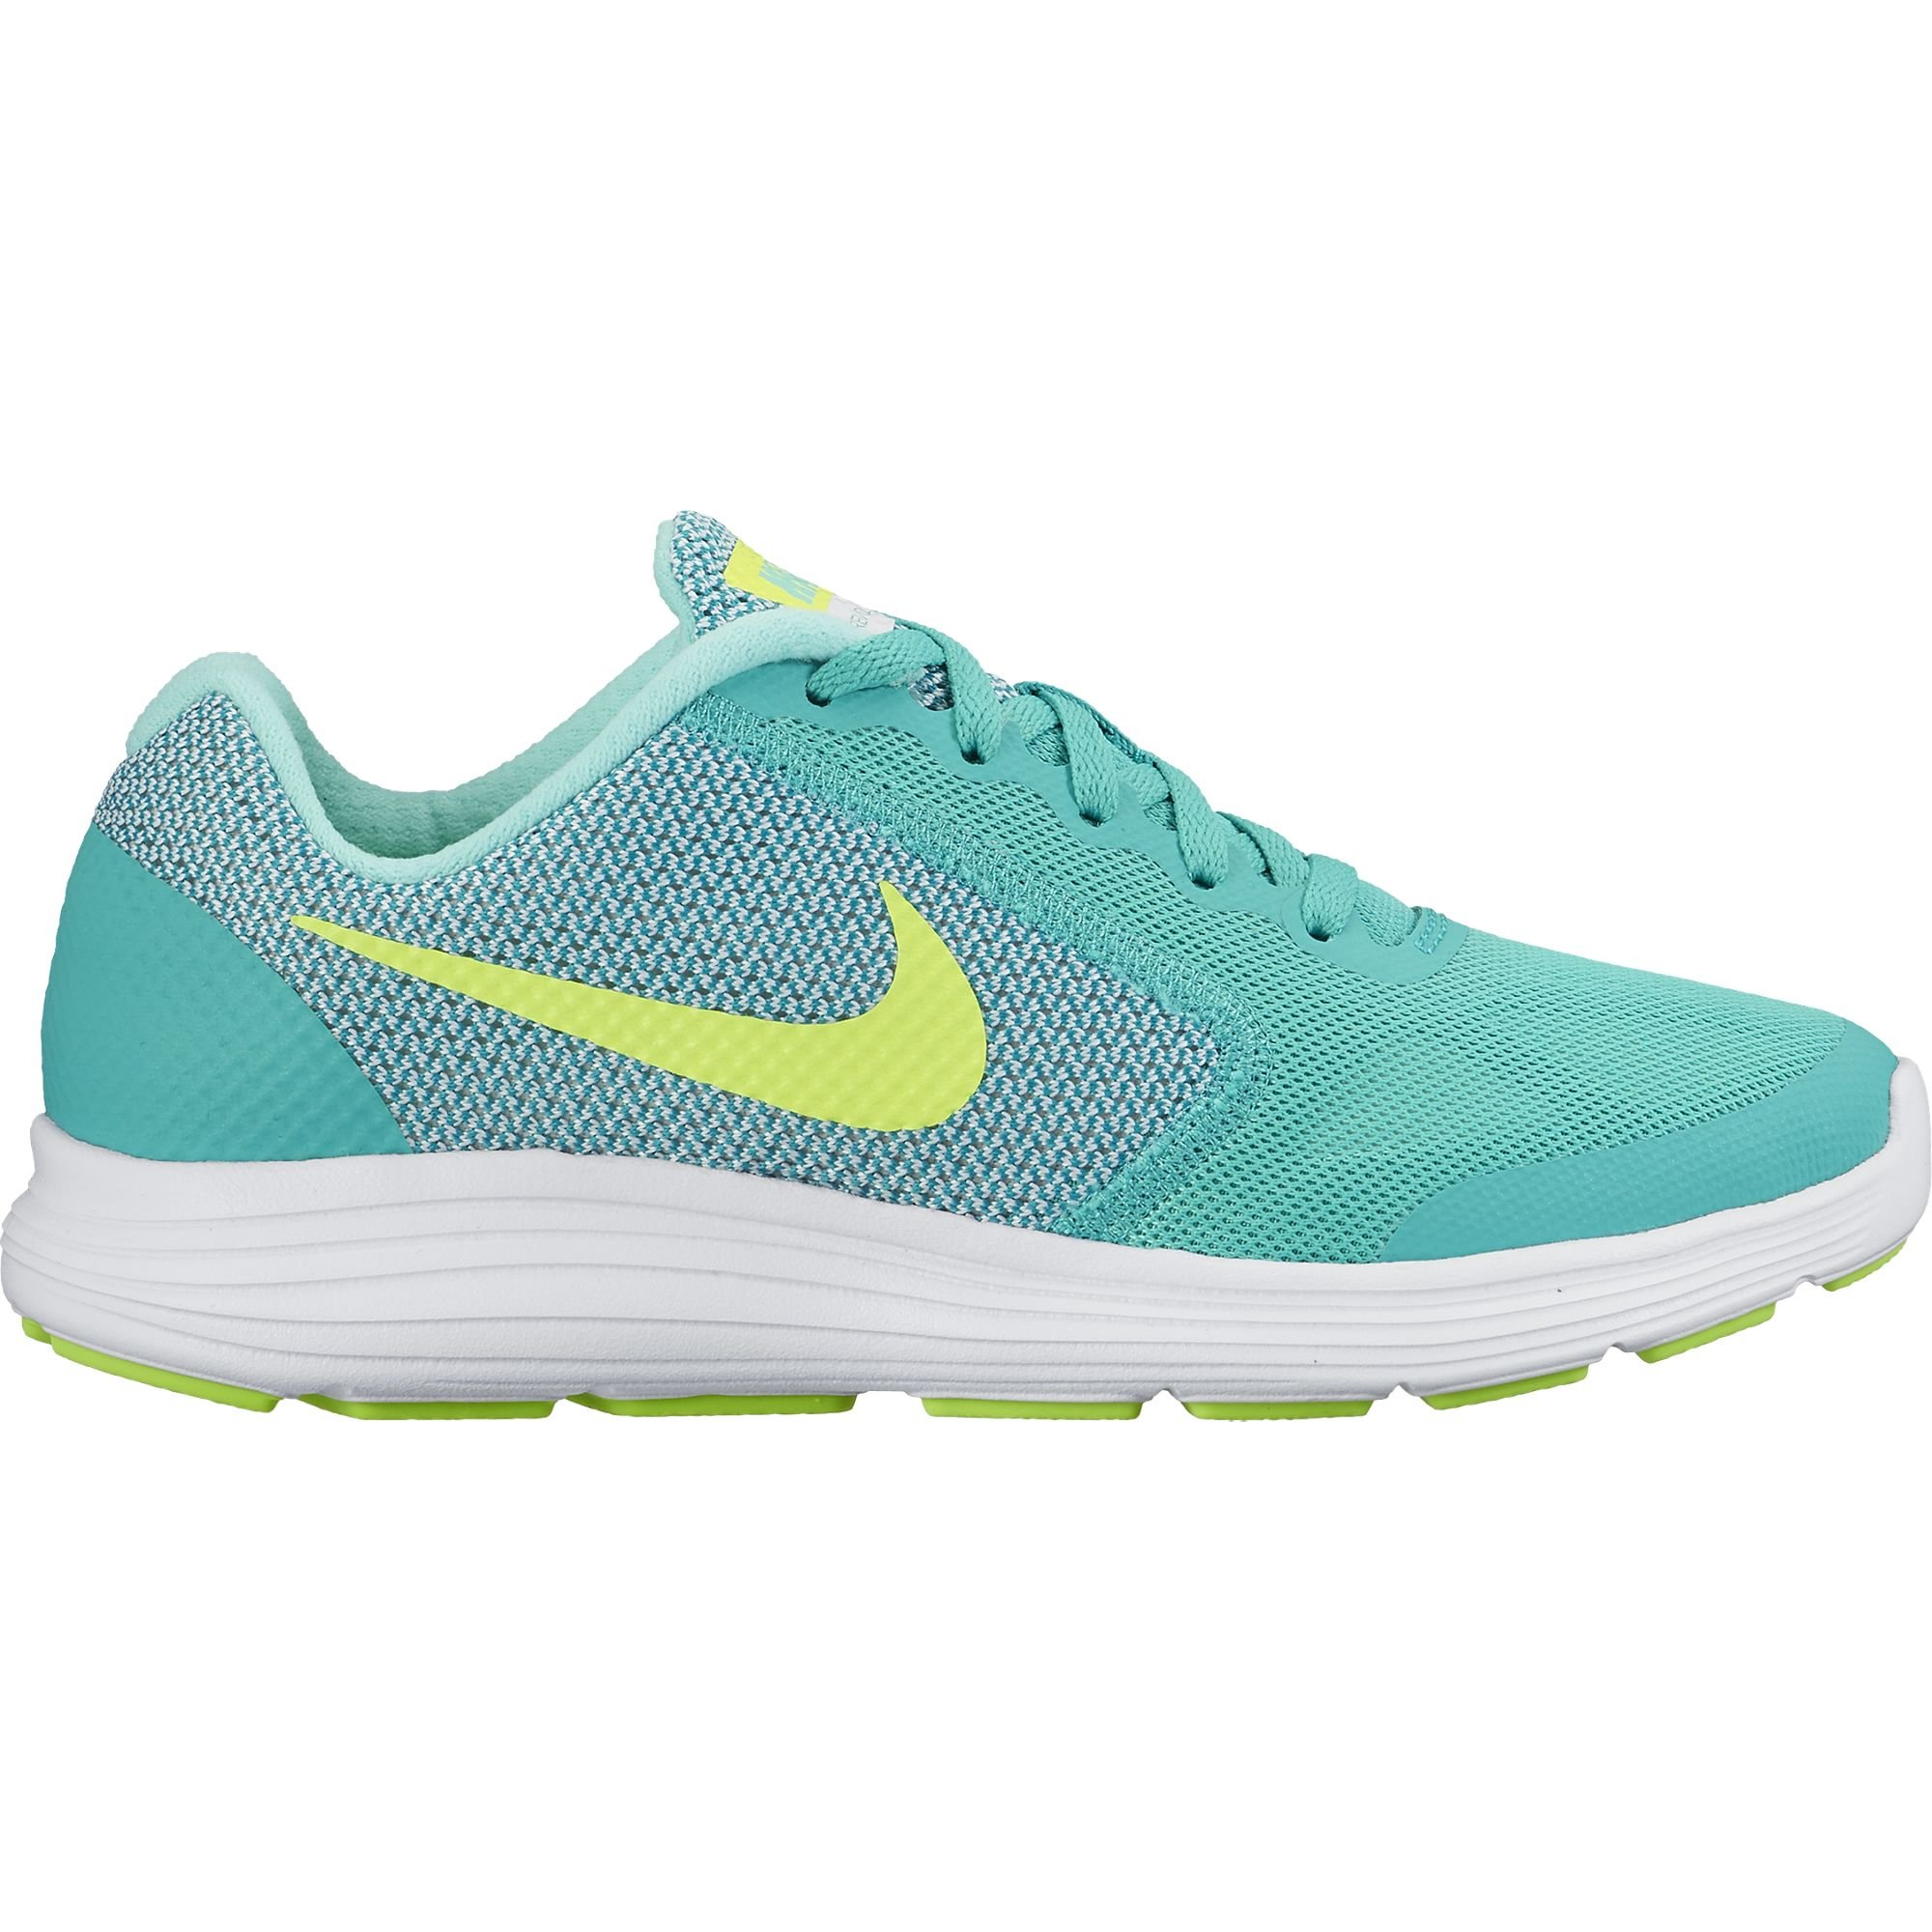 NIKE Girls' Revolution 3 (GS) Running-Shoes, Clear Jade/Volt/Hyper Turquoise/White, 6.5 M US Big Kid